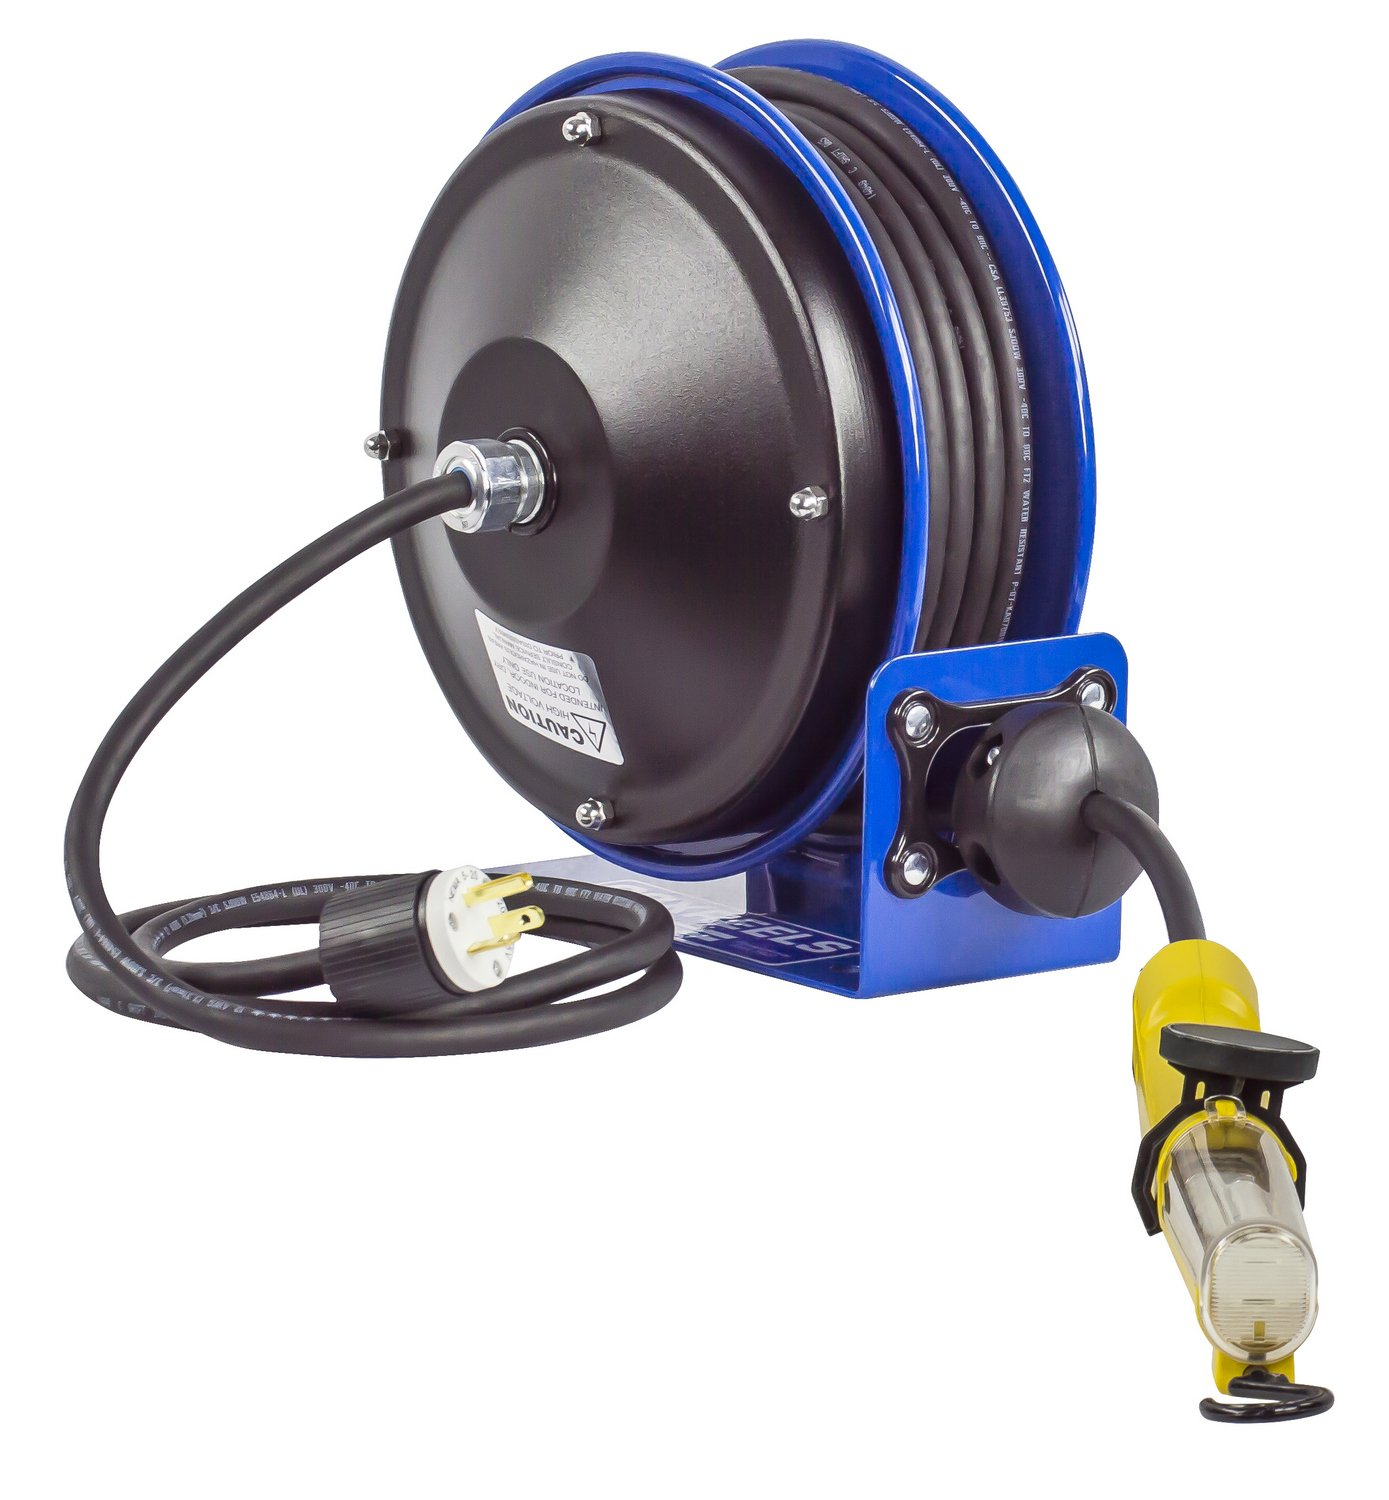 Coxreels PC10-3016-D Compact efficient heavy duty power cord reel with a fluorescent tube light with tool tap